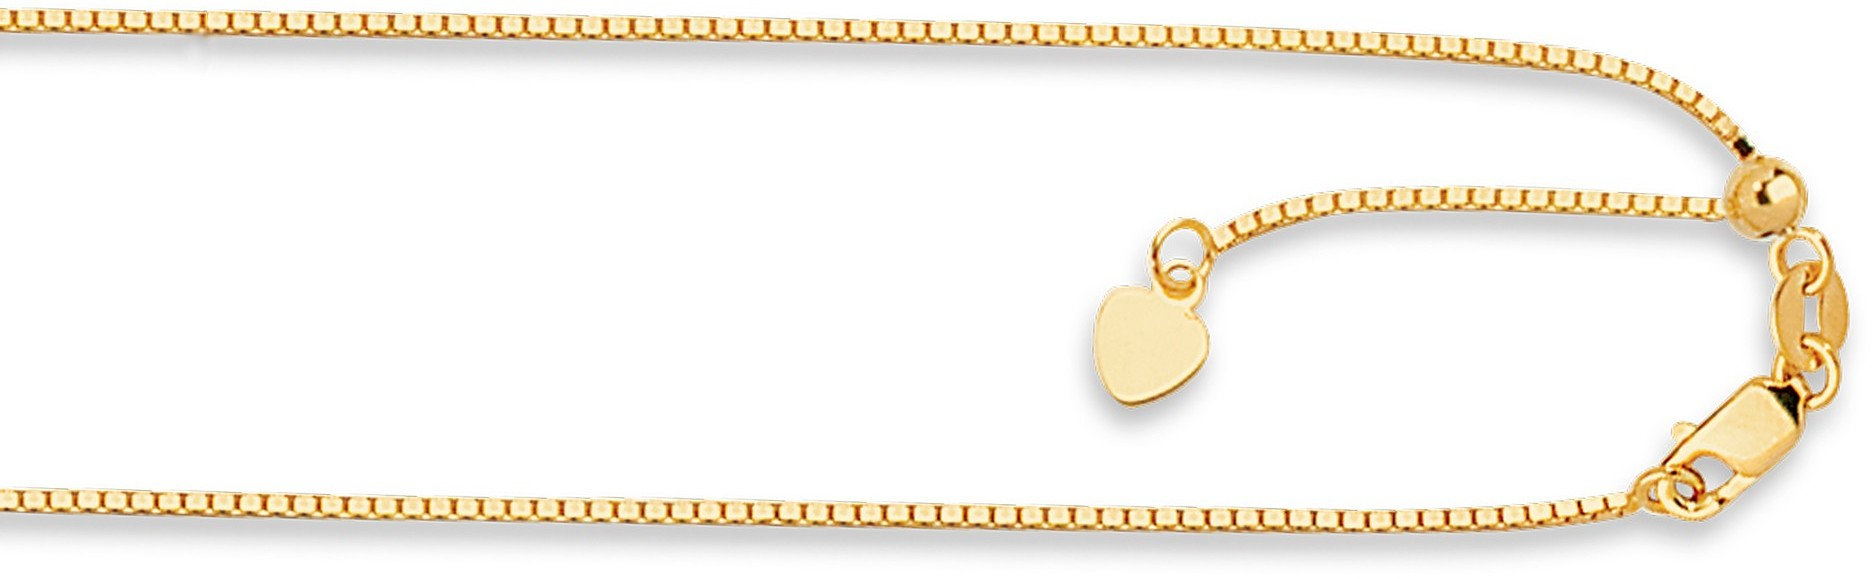 "22"" 14K Yellow Gold 1.1mm (0.04"") Polished Diamond Cut Adjustable Box Chain w/ Lobster Clasp"